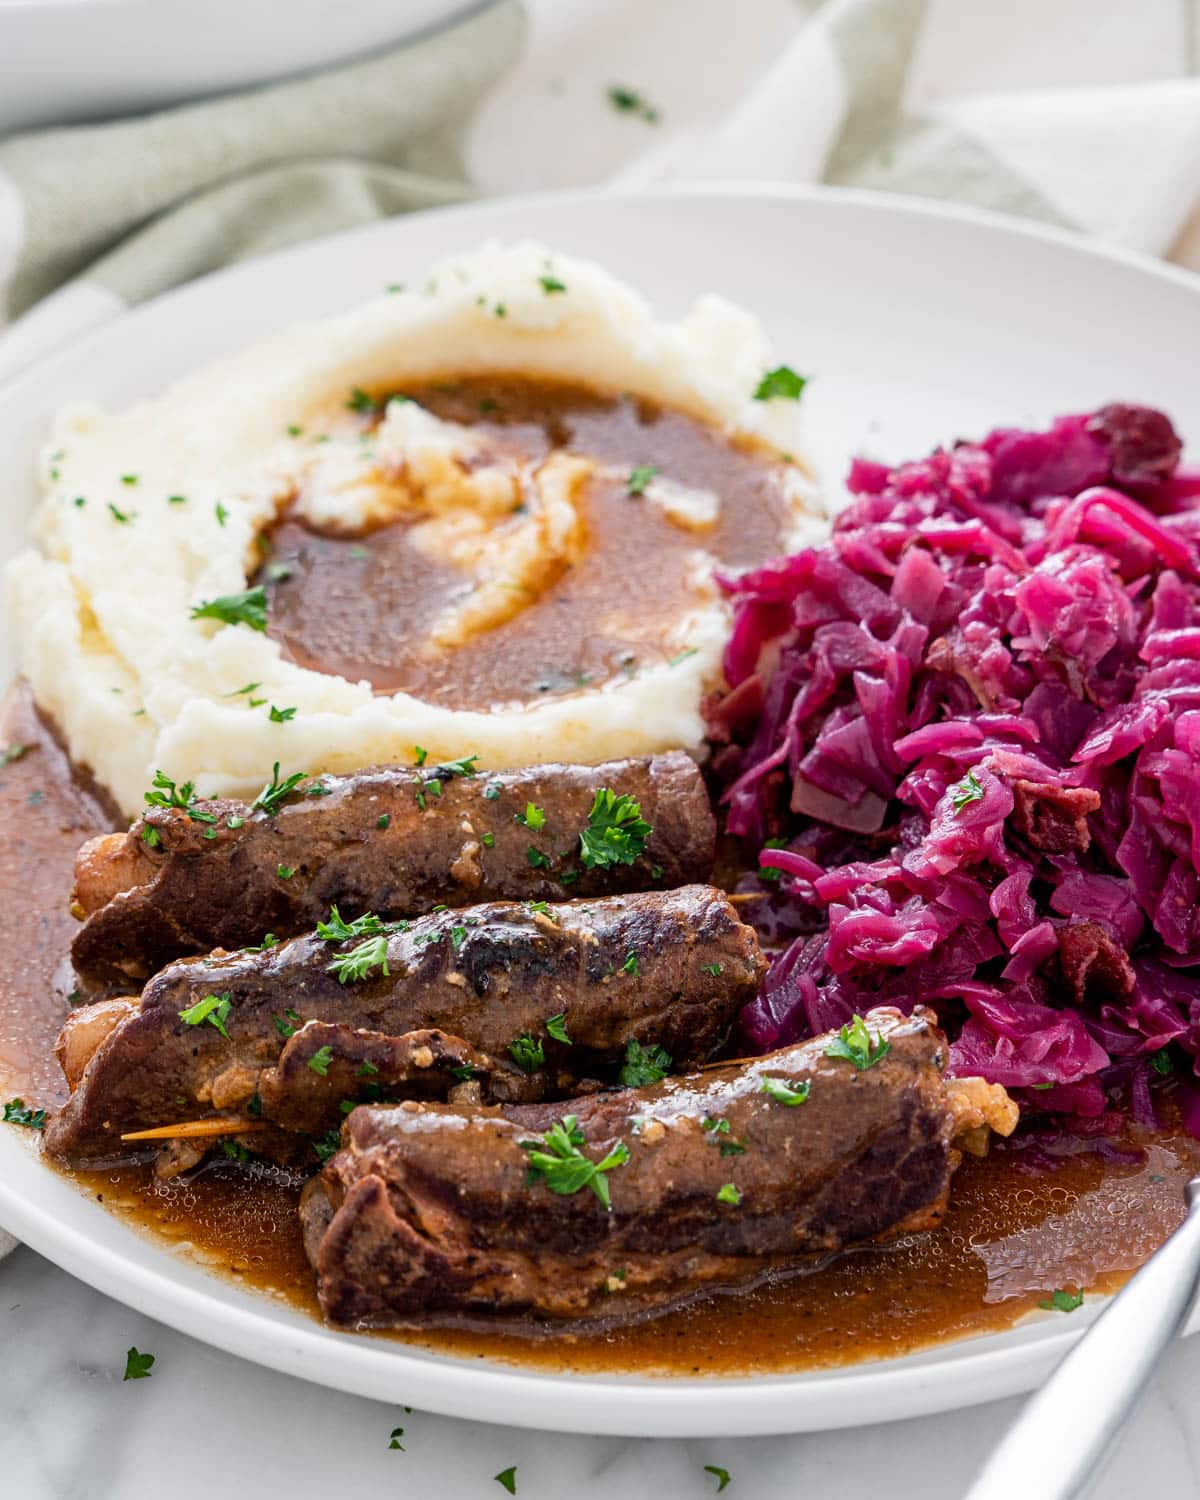 beef rouladen with gravy, mashed potatoes and red cabbage on a white plate